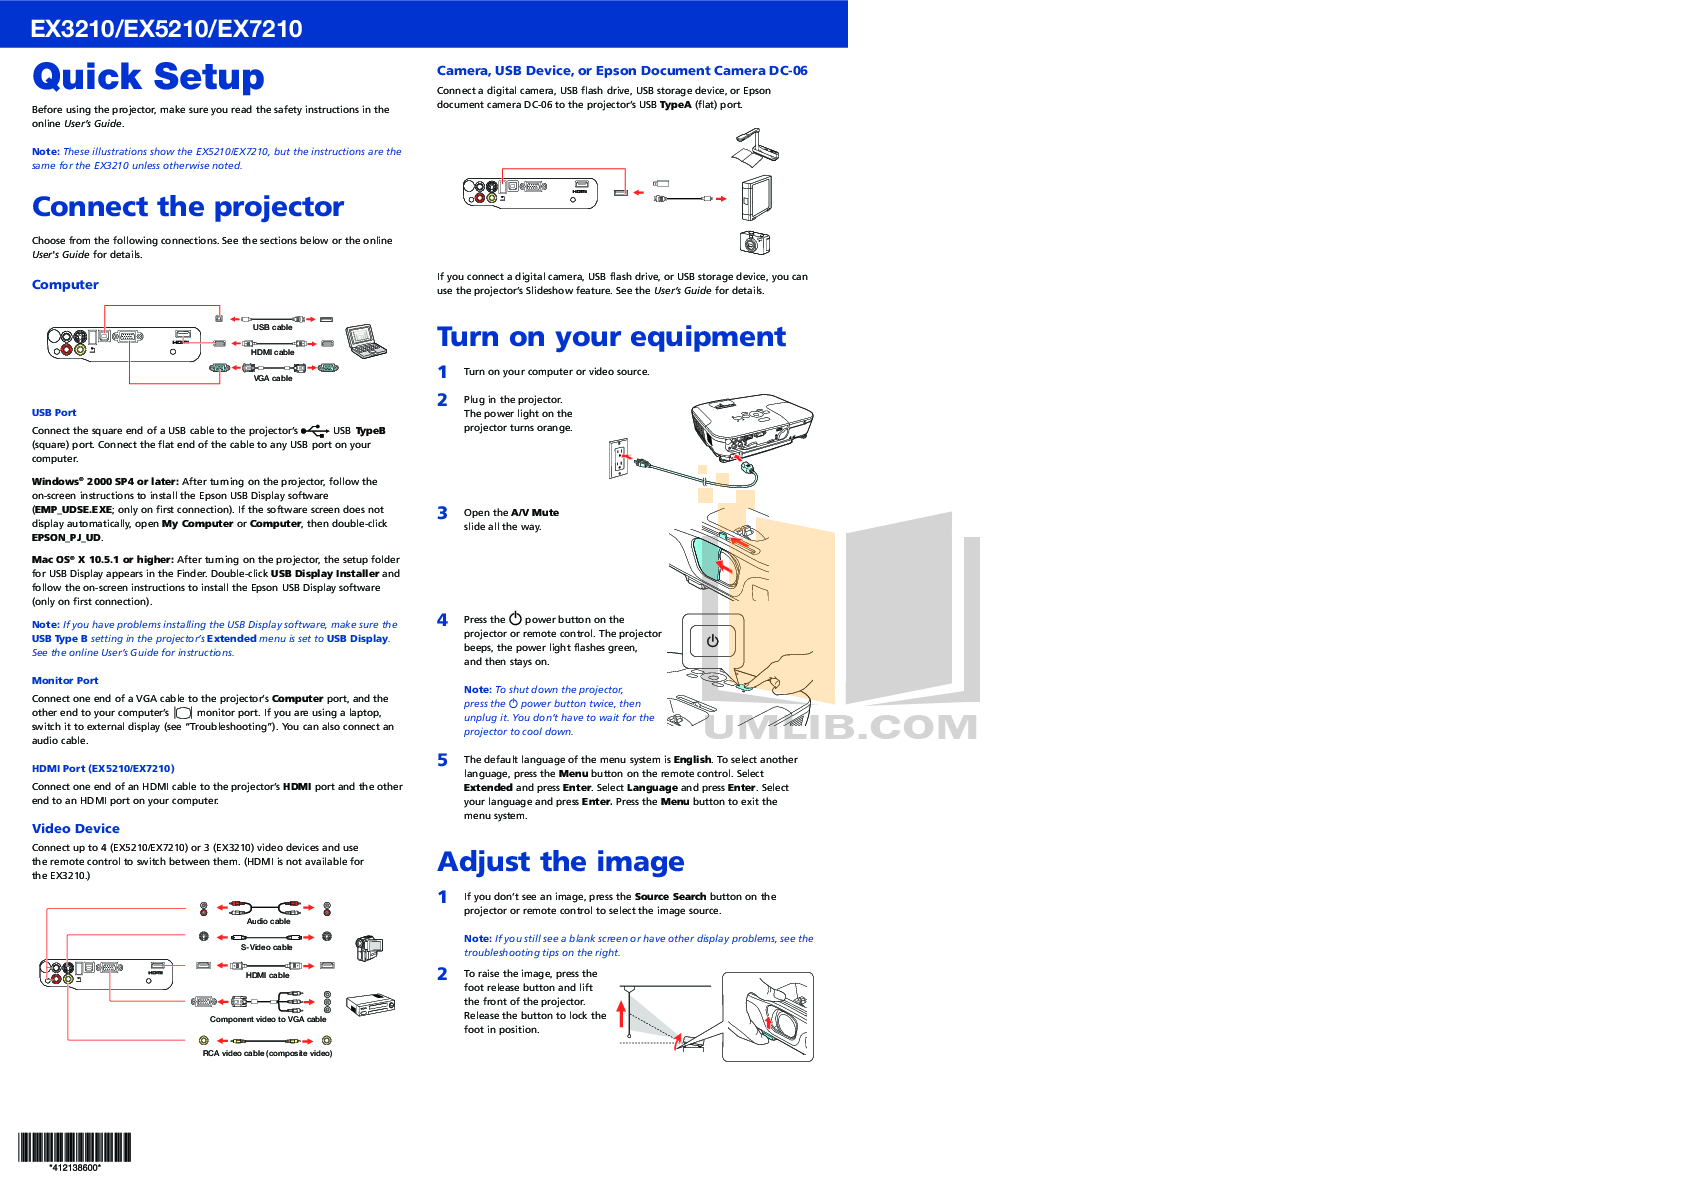 pdf for Epson Projector EX7210 manual